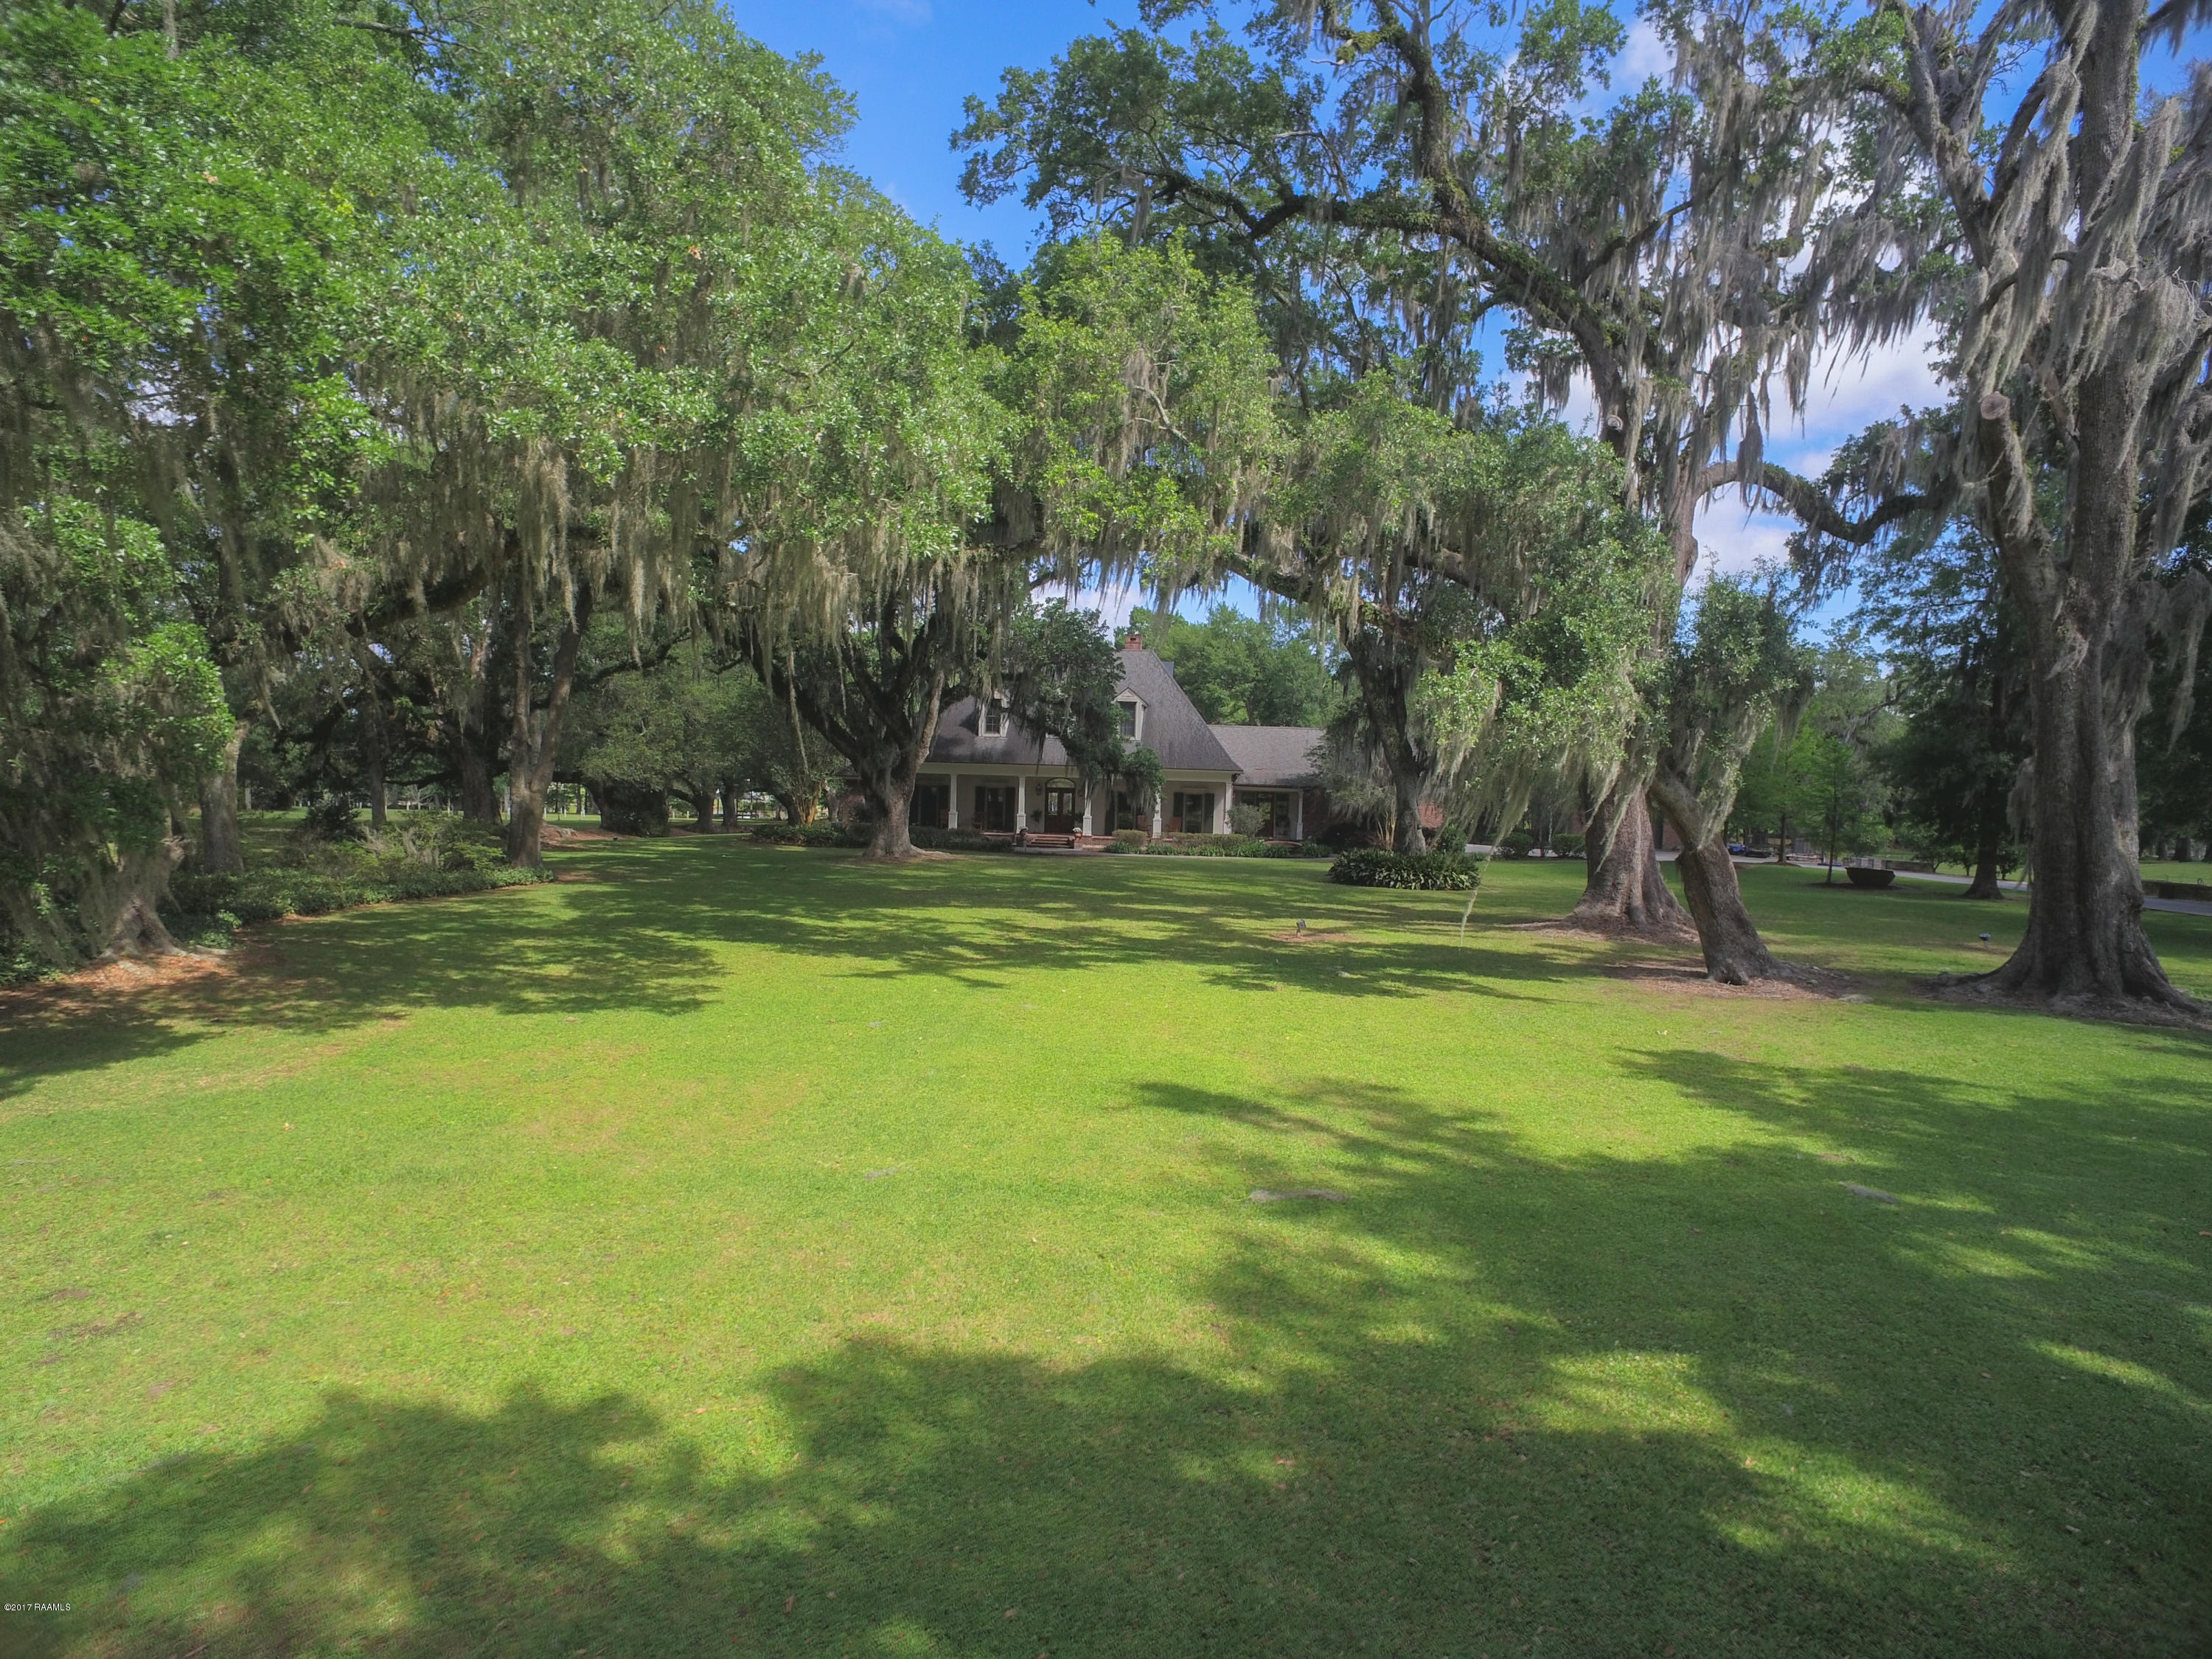 4550 Chitimacha Trail, Jeanerette, LA 70544 Photo #47